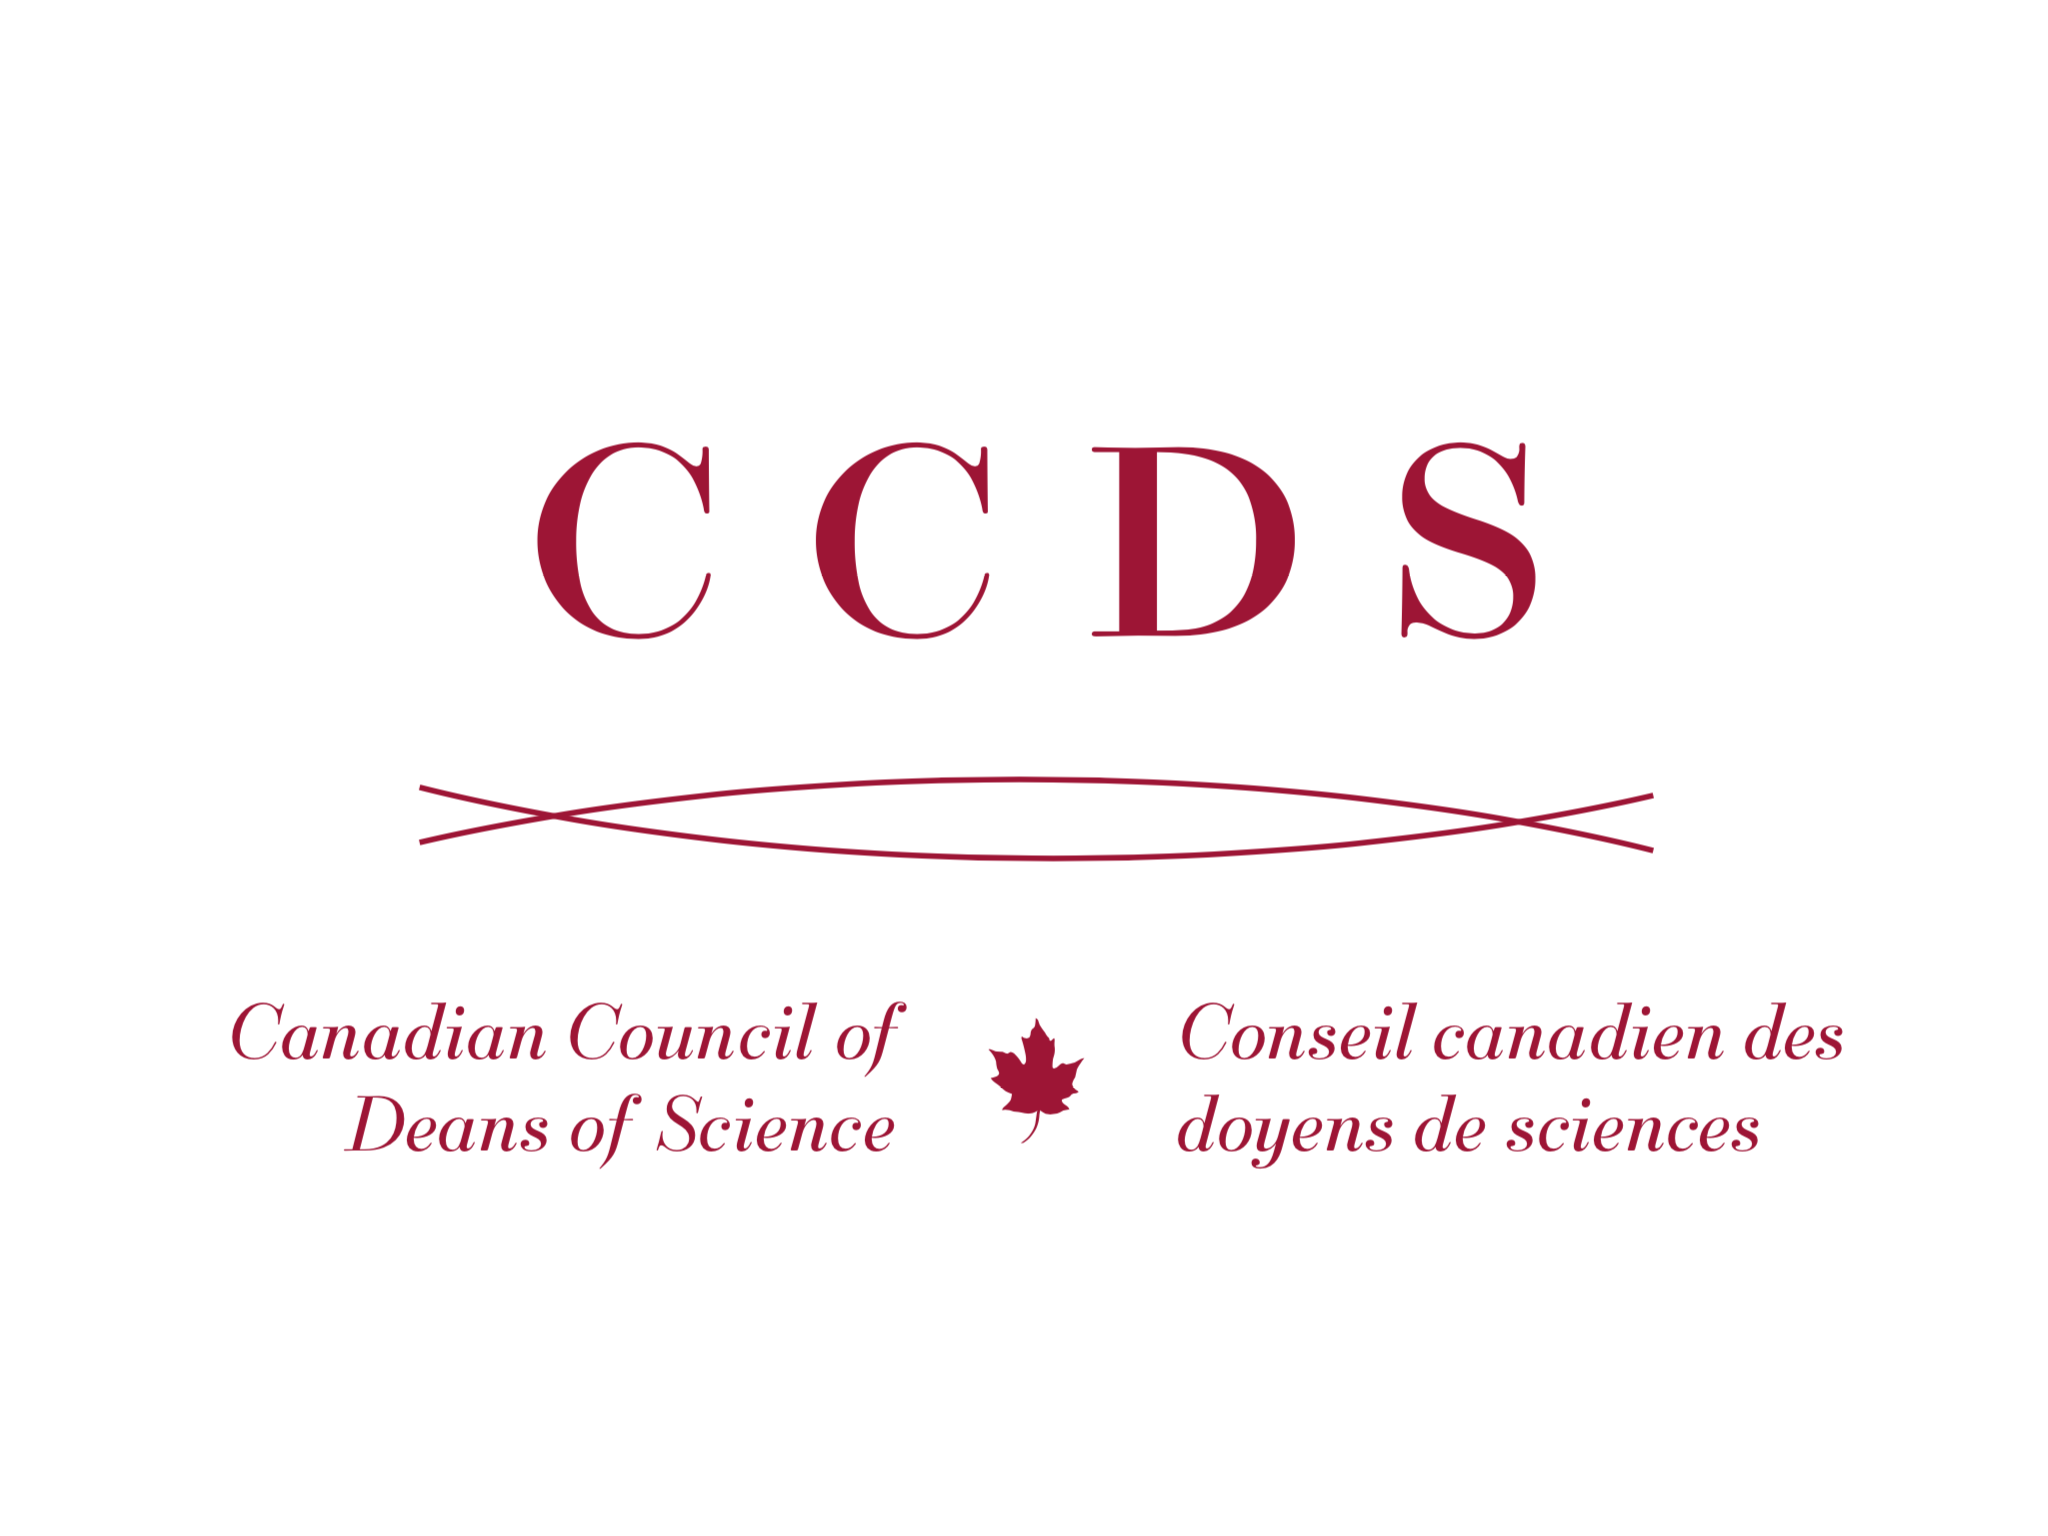 Canadian Council of Deans of Science